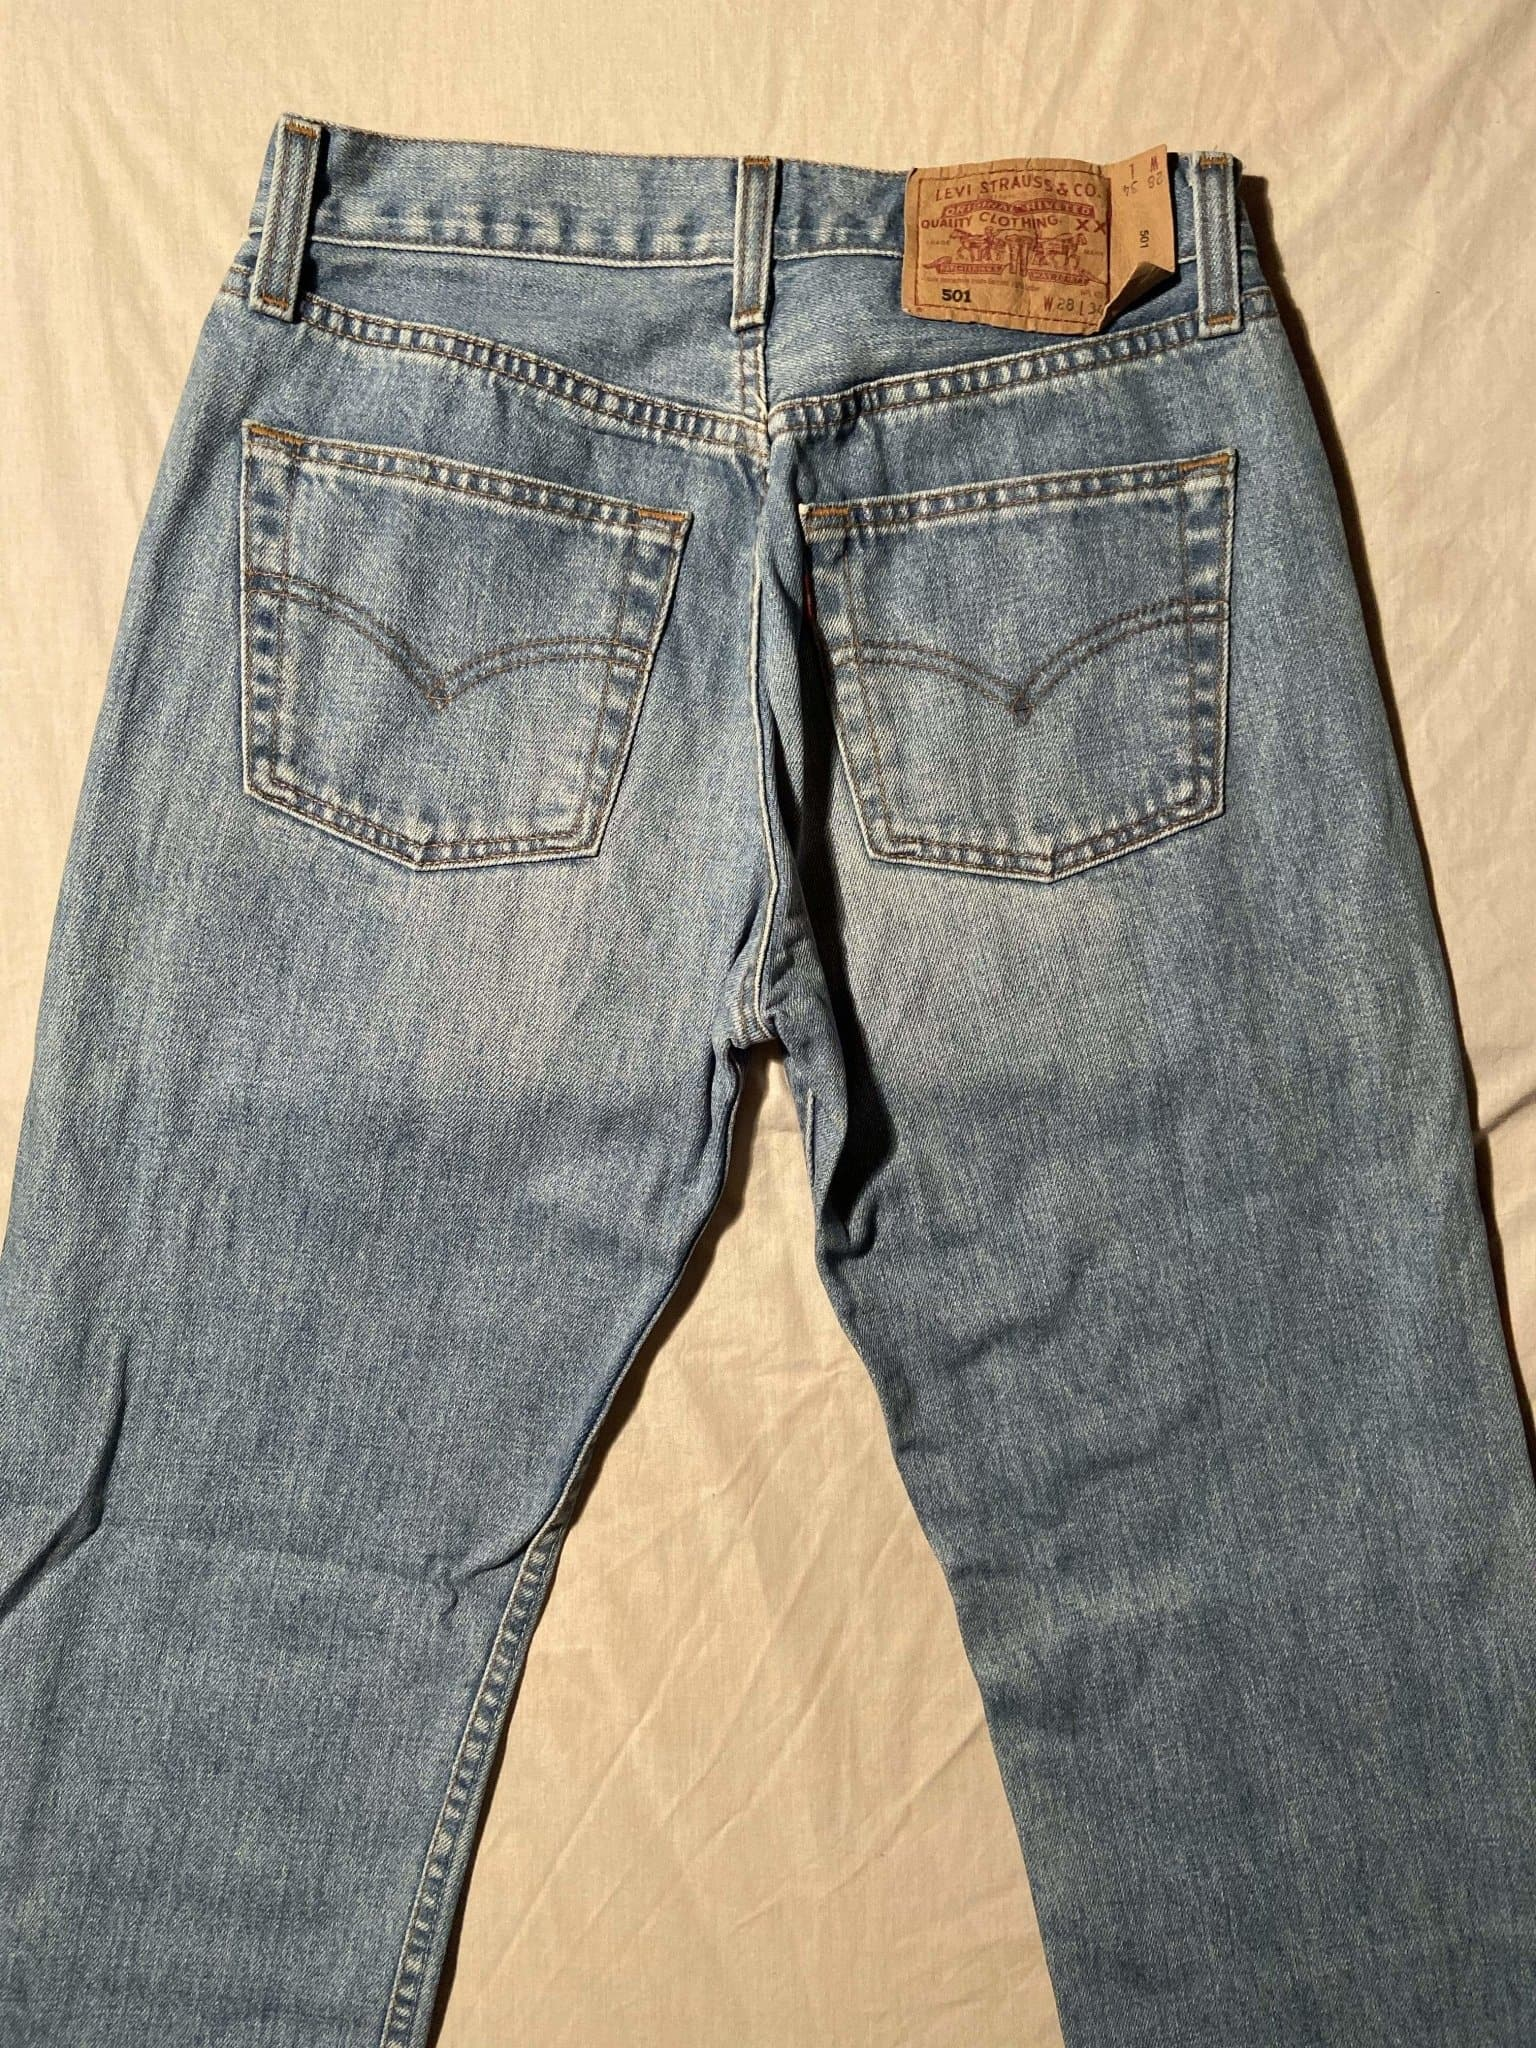 Vintage Grade A Levi's Original 501 Regular Fit Jeans W28 L34 (DE7) - Discounted Deals UK